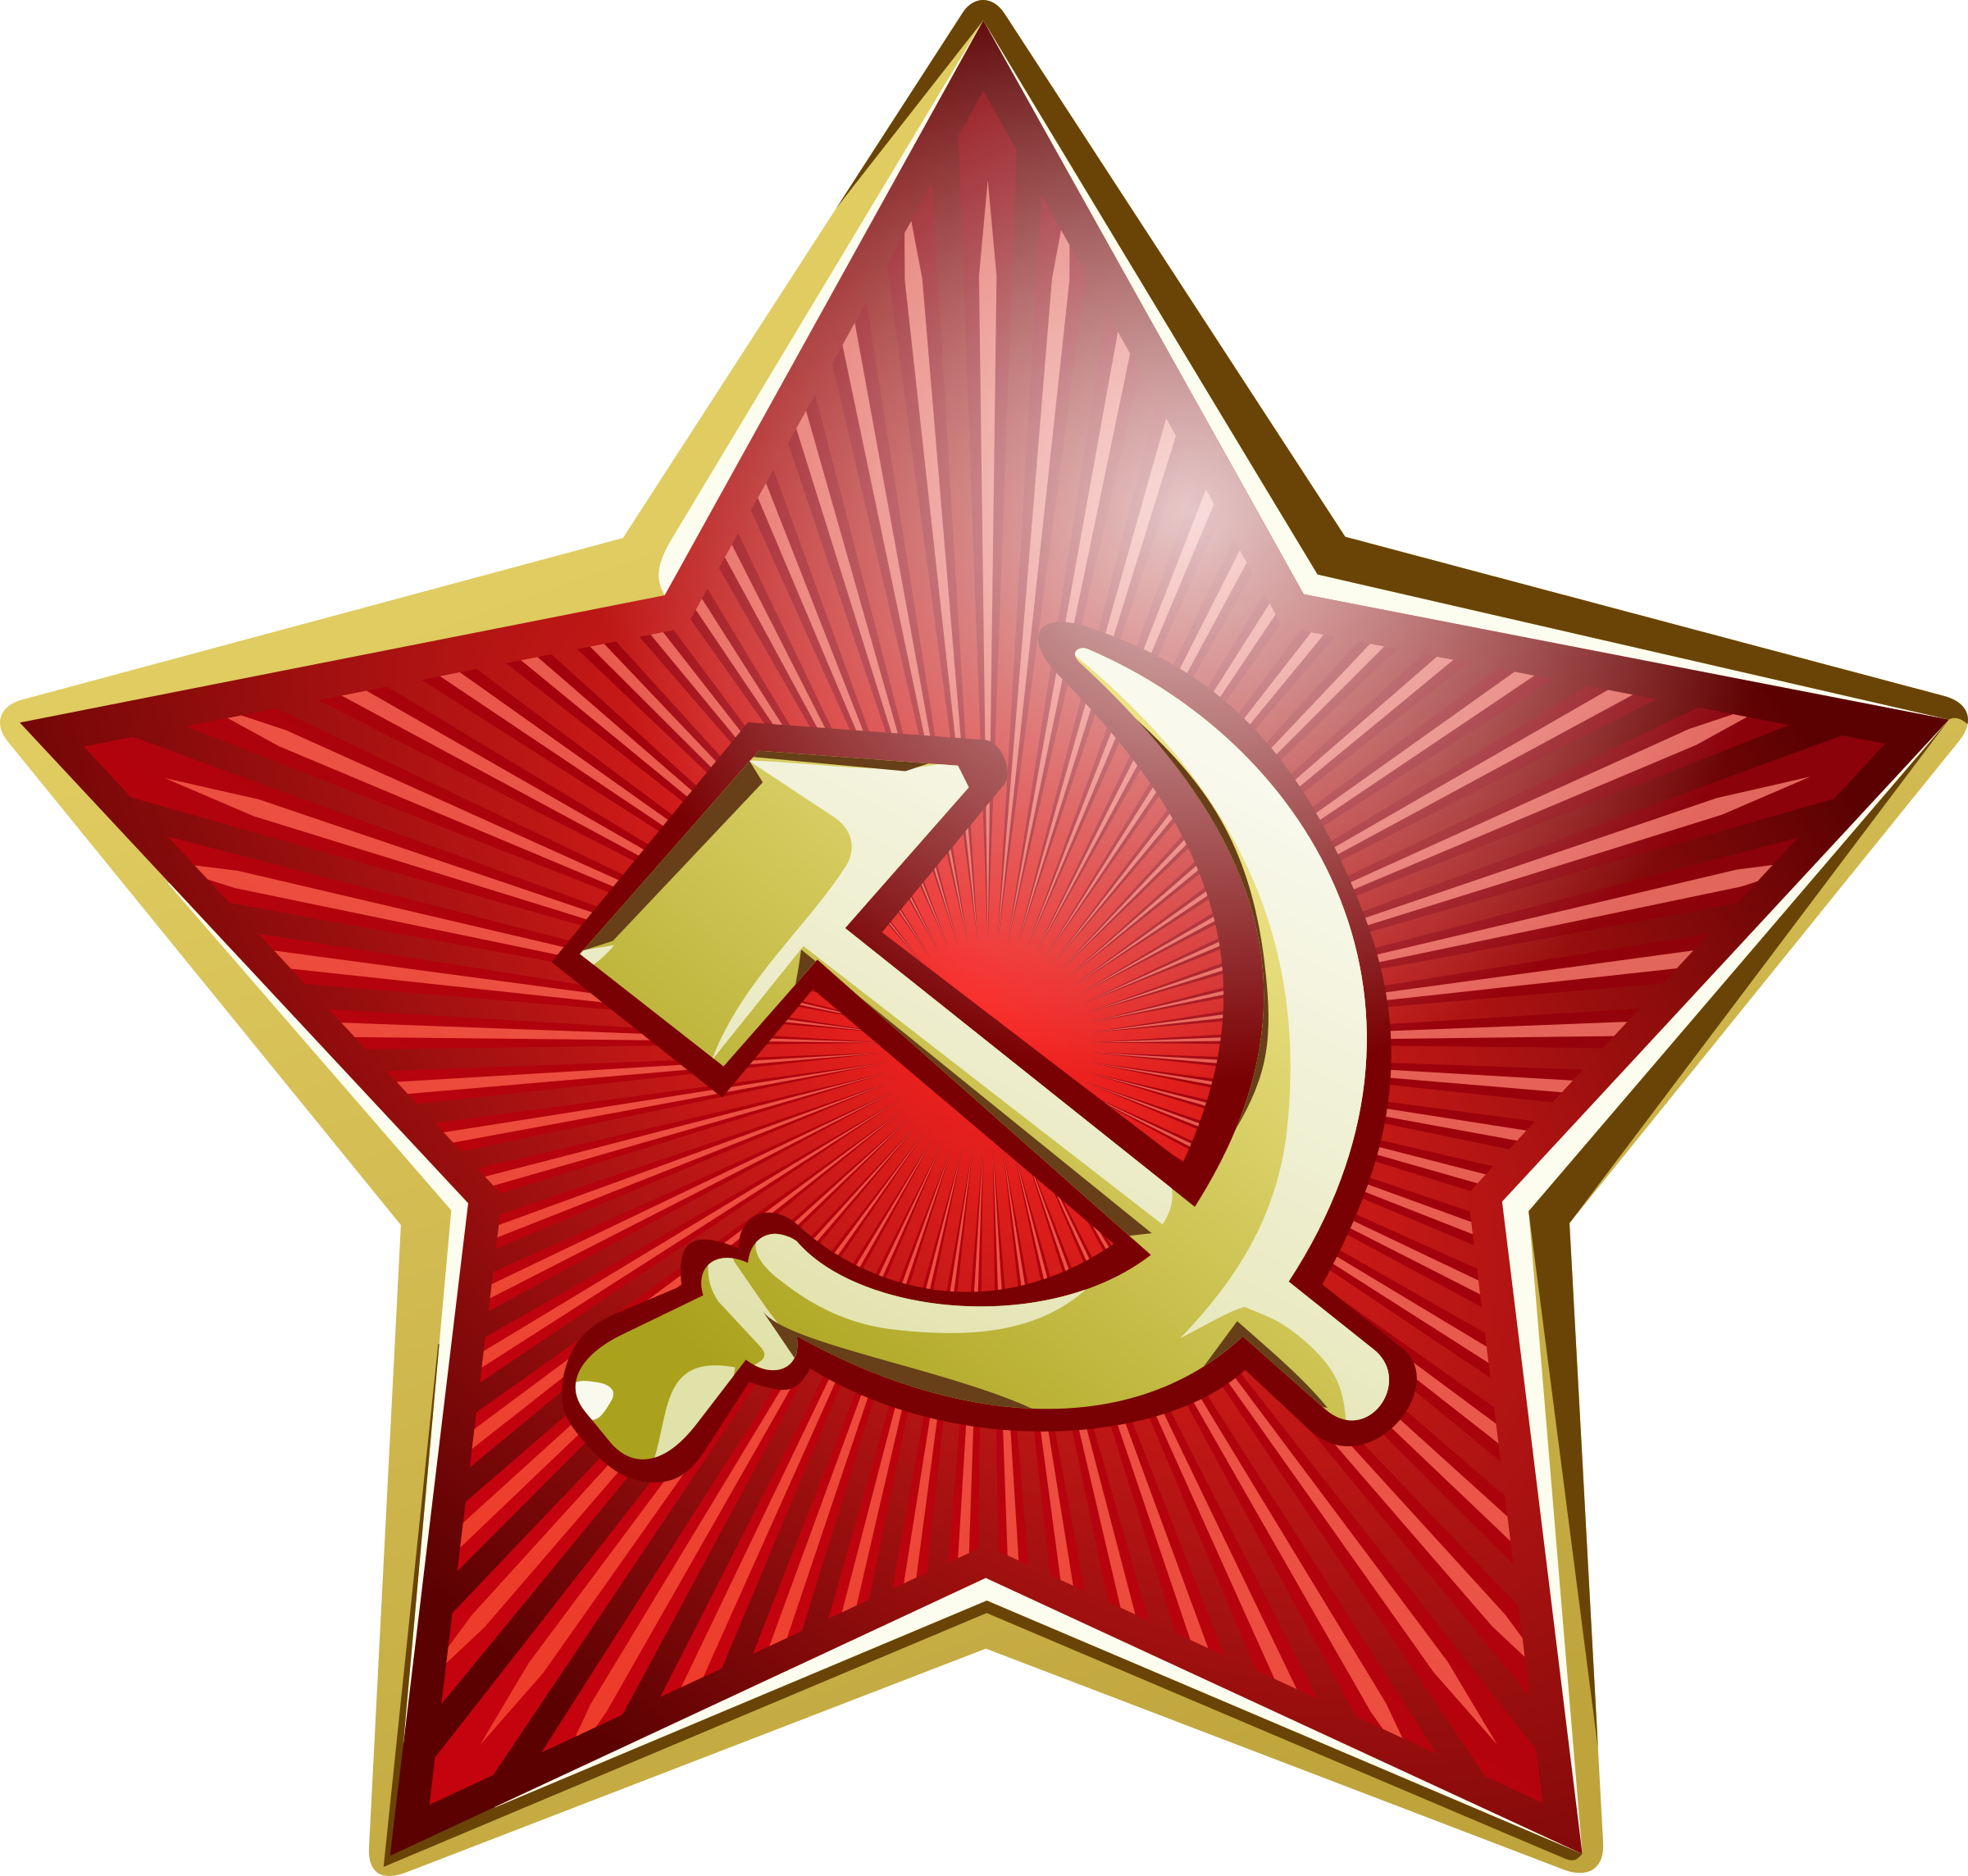 Soviet star png. Union hammer and sickle